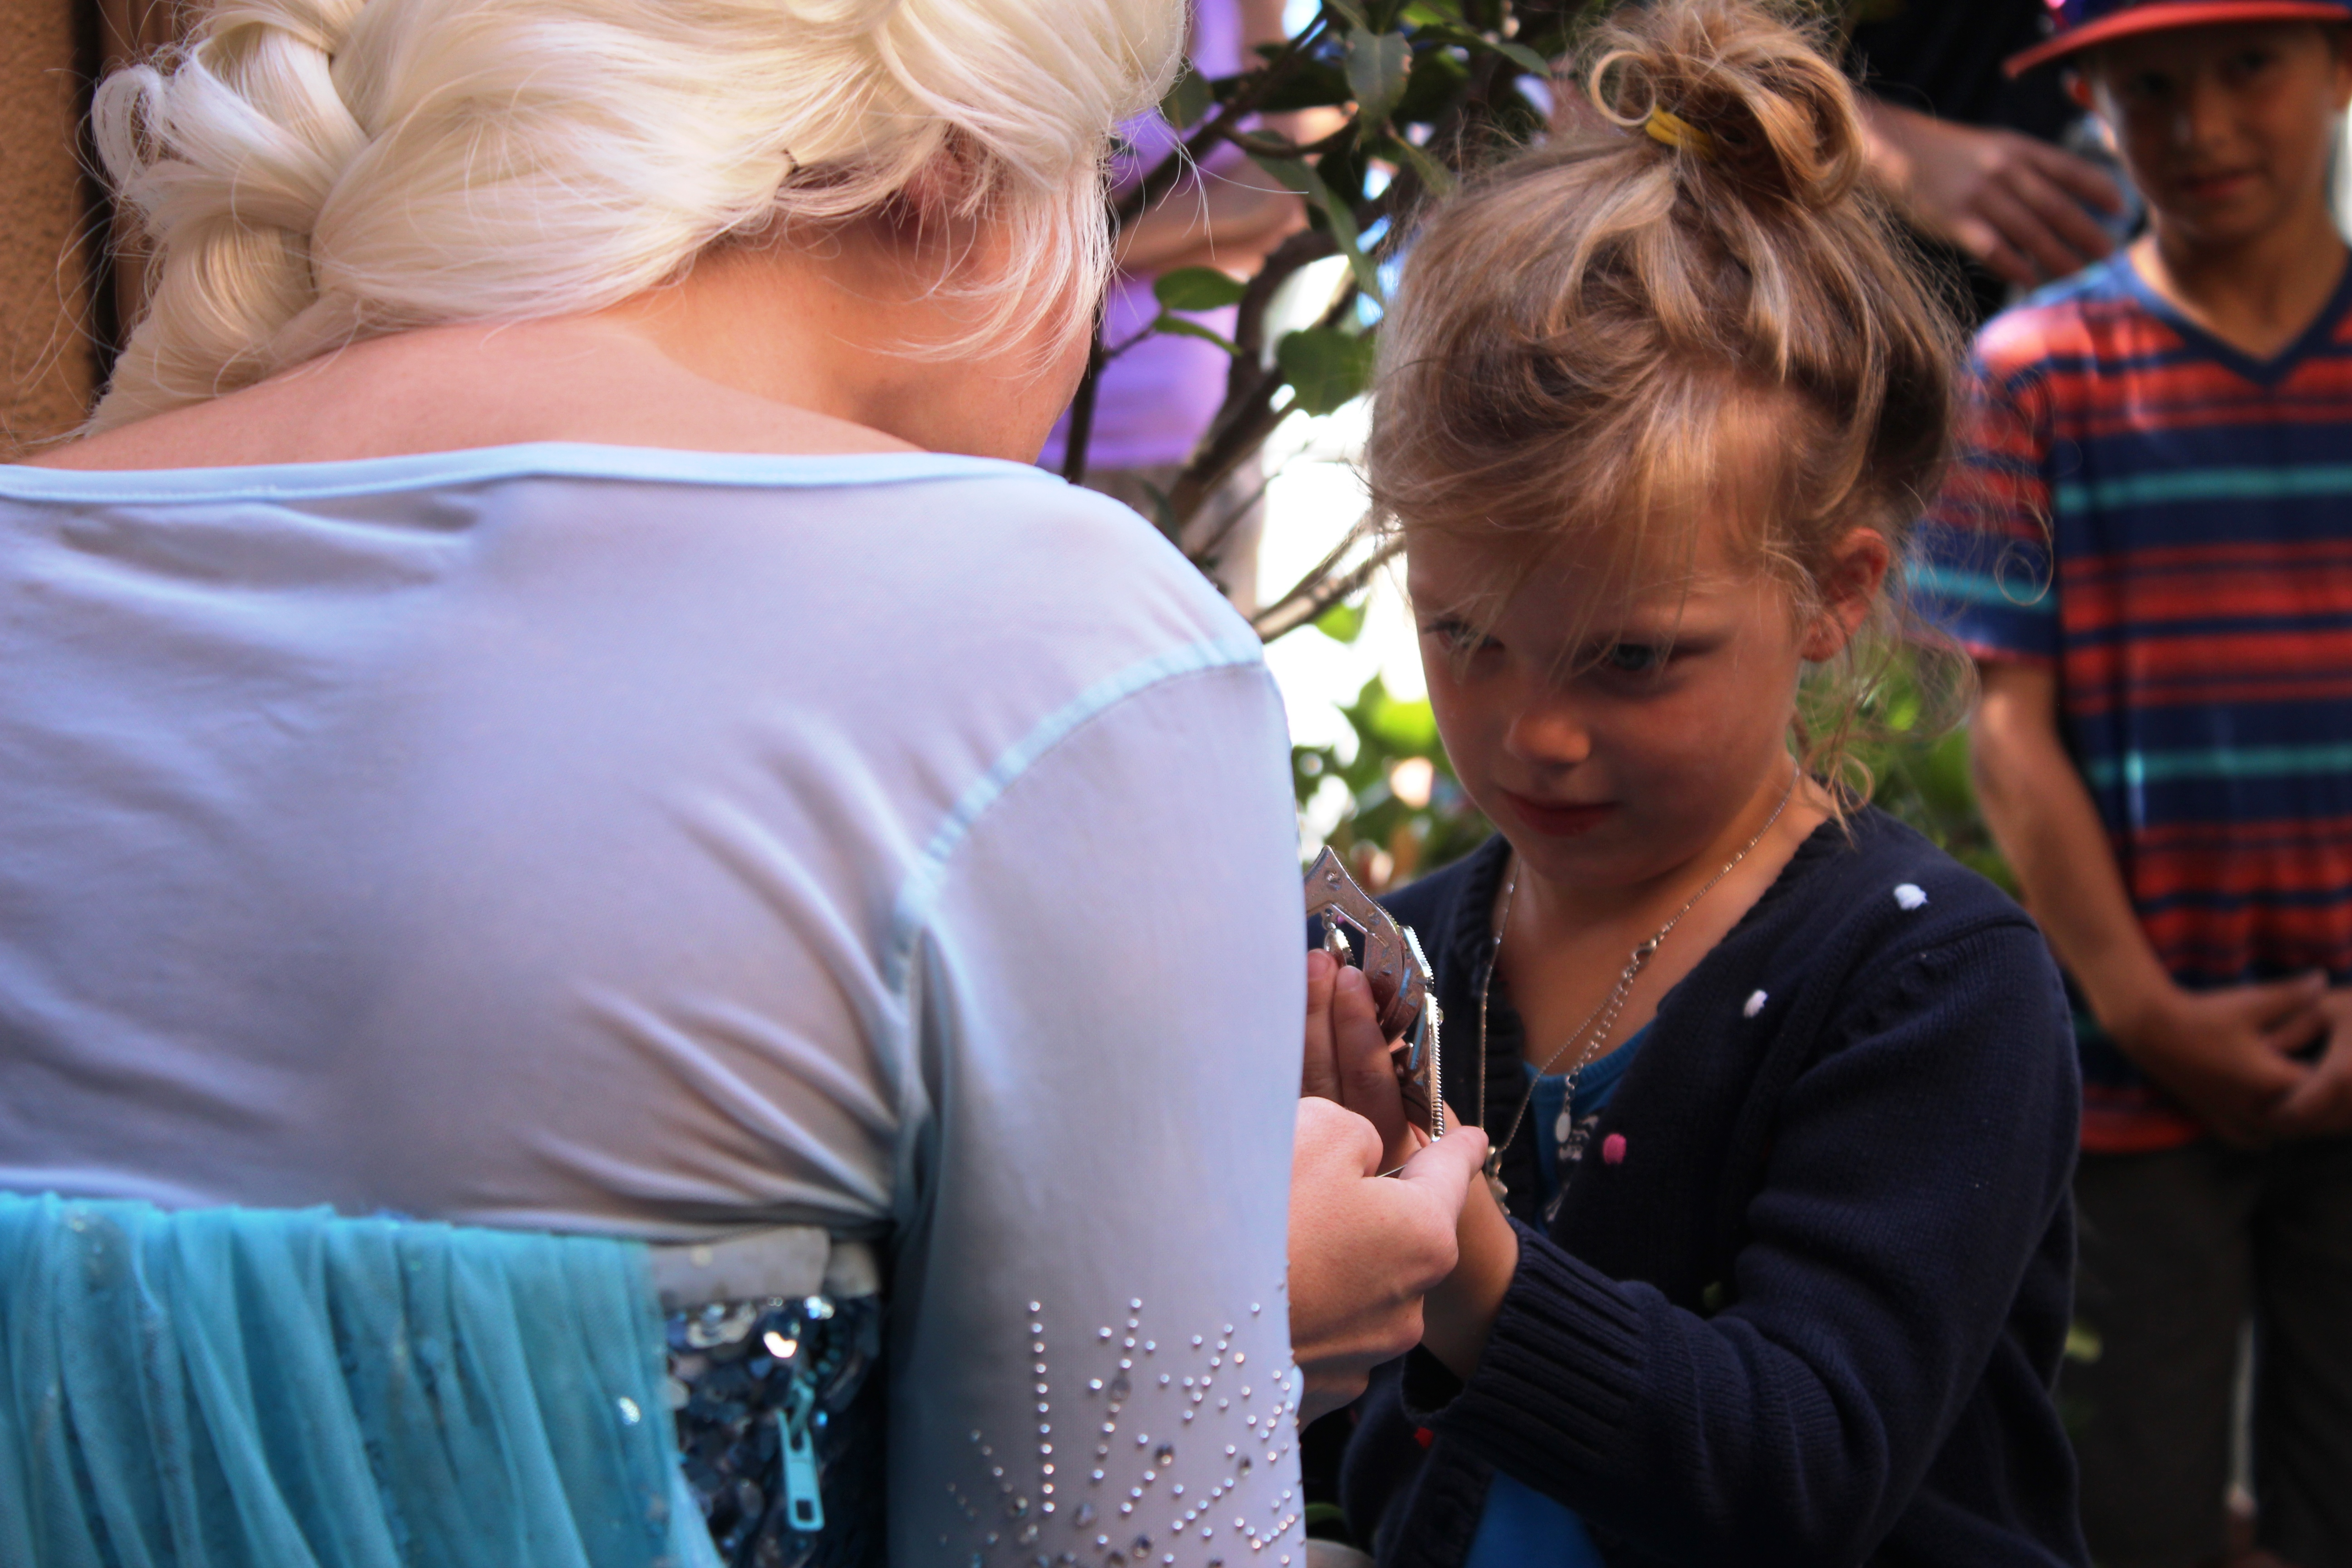 Waiting for 5-year-old Raelyn Beckler at her Dana Point home was Queen Elsa, from Disney's latest hit Frozen. Raelyn was in awe as Elsa placed a crown upon her head and the pair, hand-in-hand, went to see Raelyn's new bedroom. Photo: Andrea Papagianis